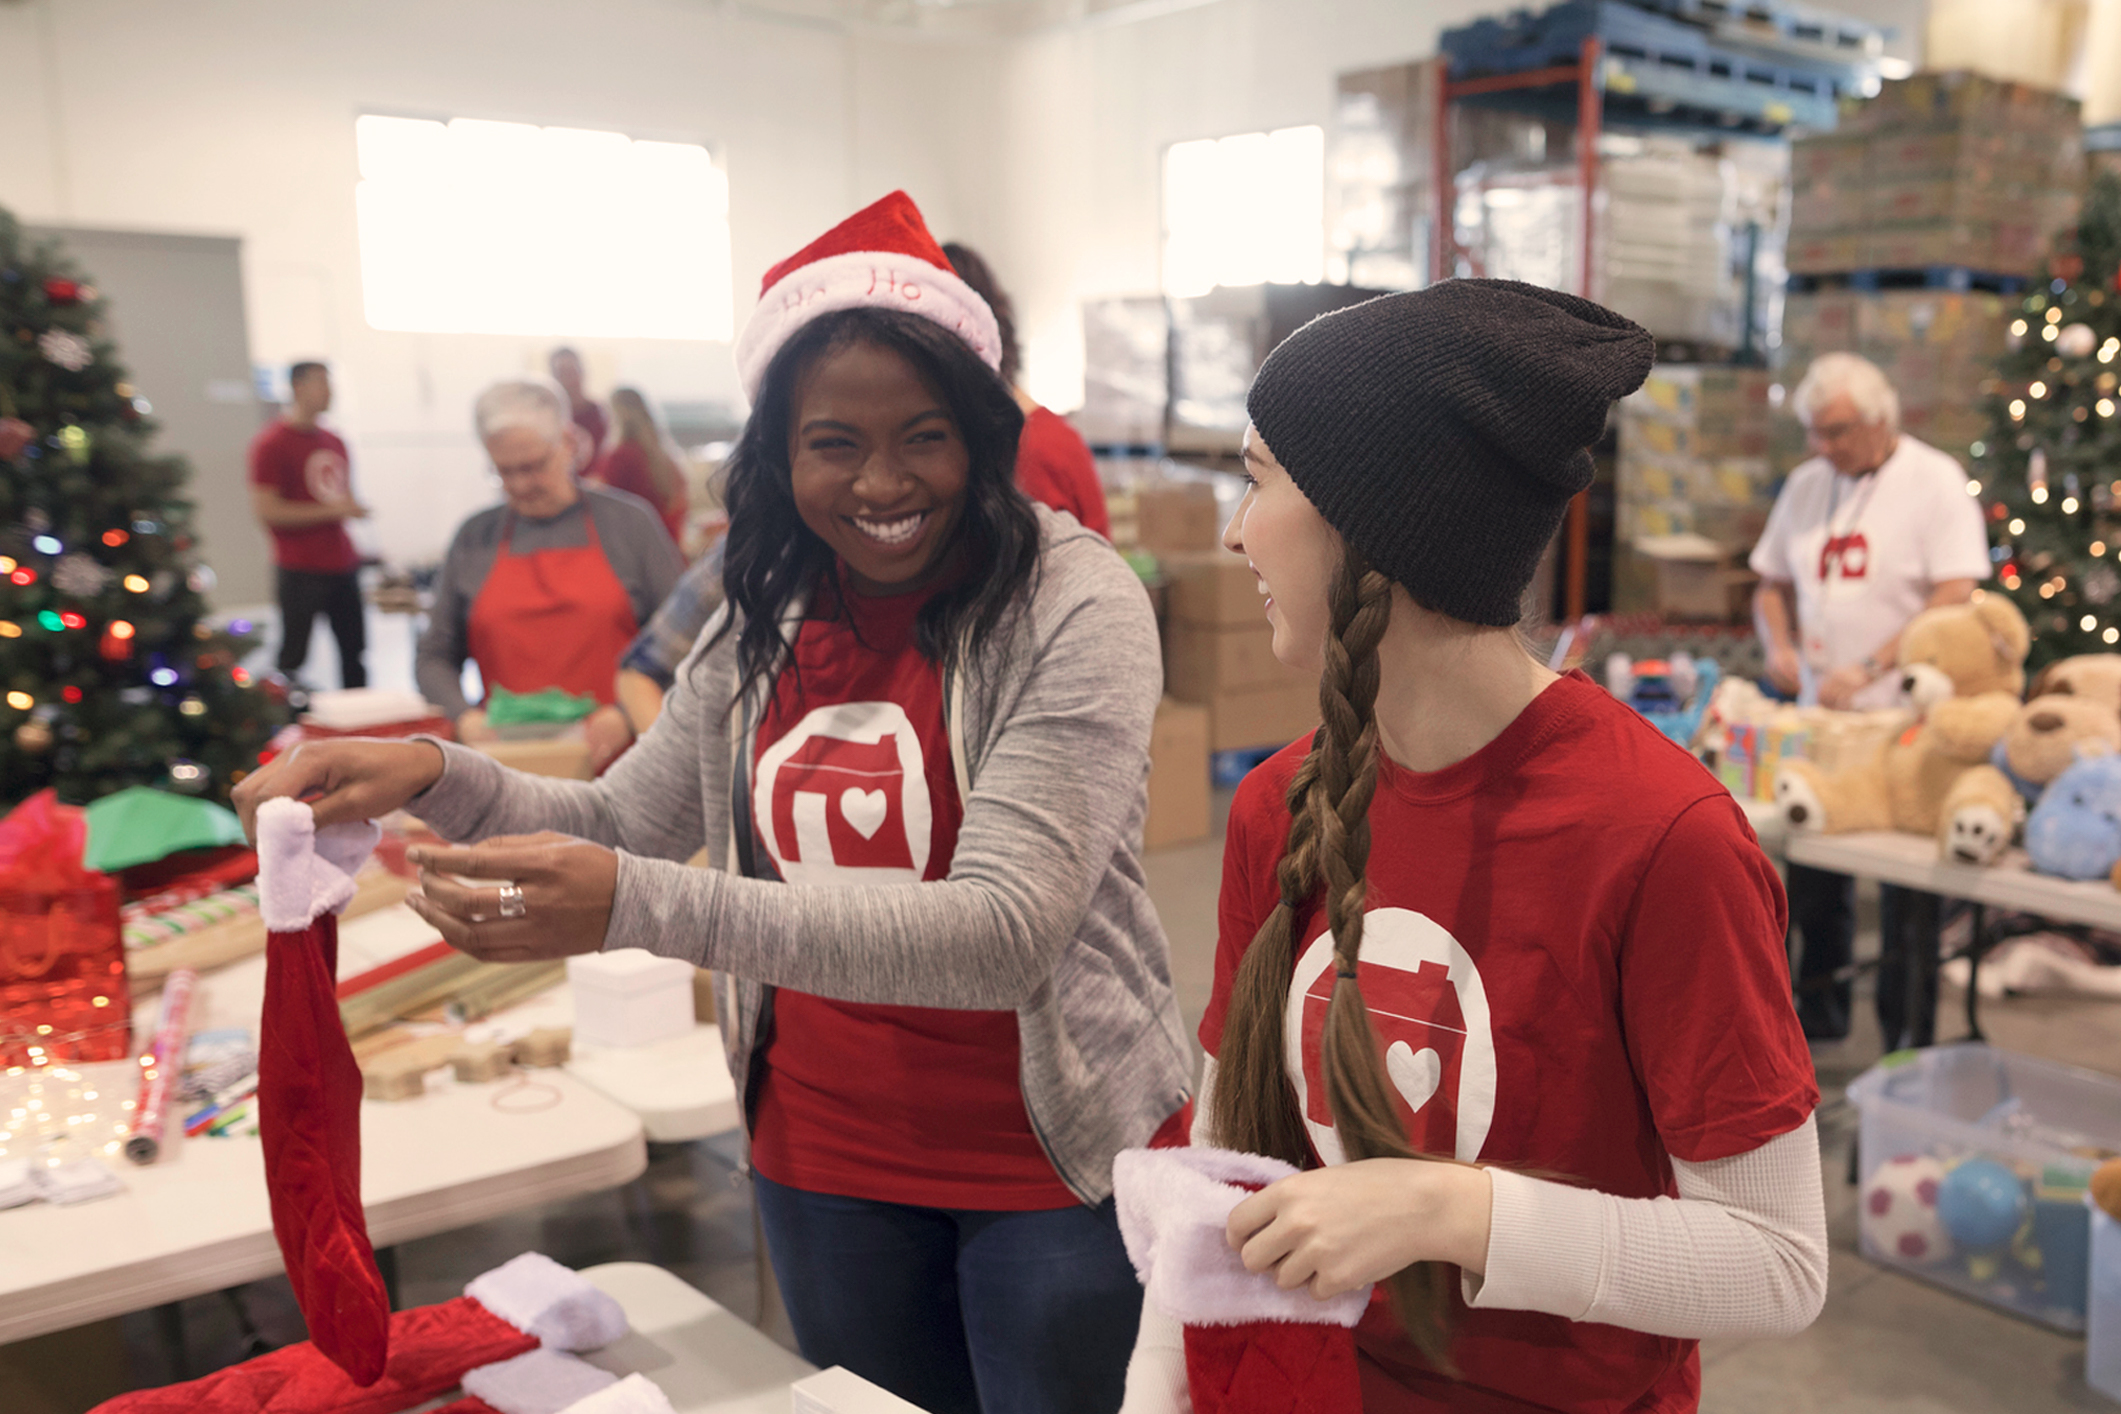 Volunteers Stuffing Holiday Stockings